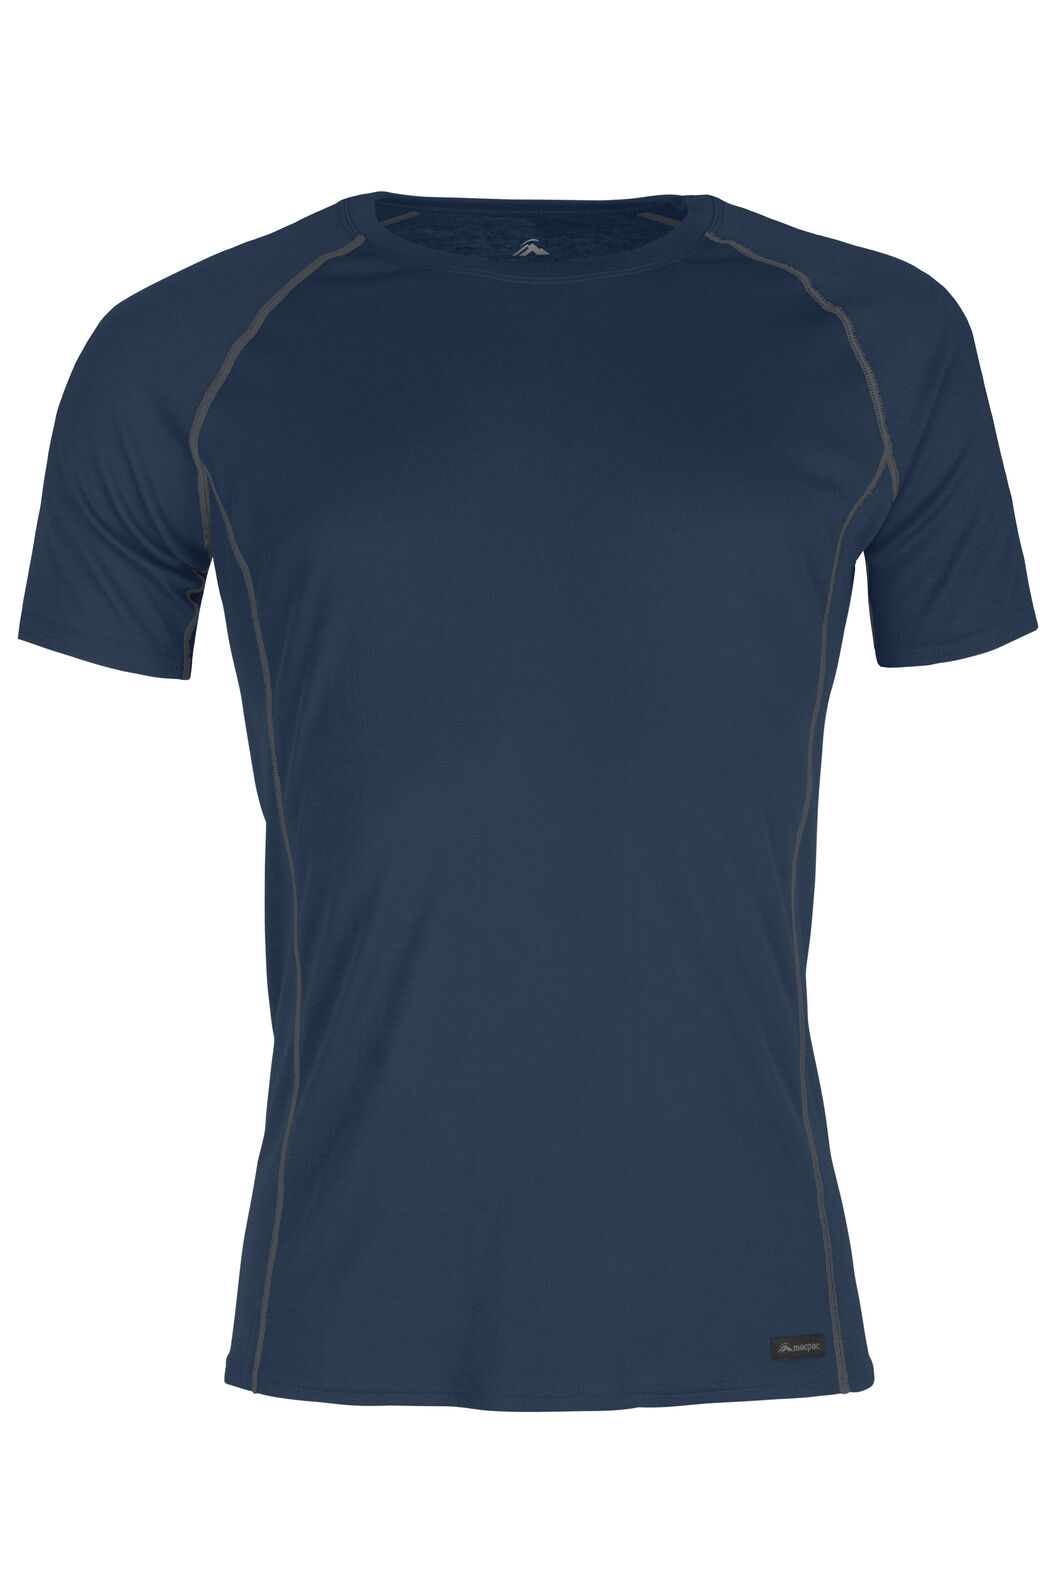 Macpac Geothermal Short Sleeve Top - Men's, Carbon, hi-res